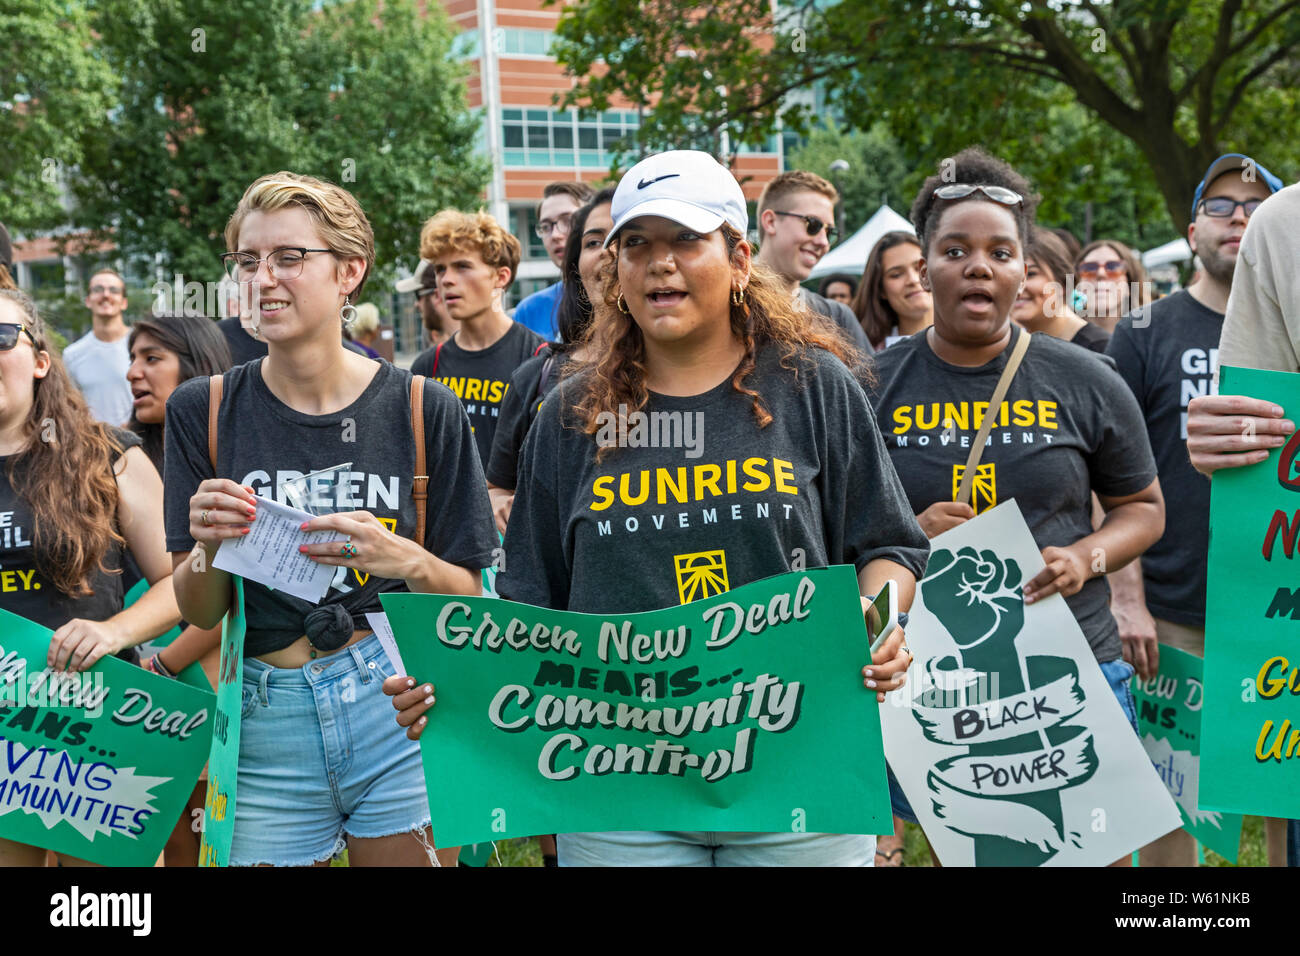 Detroit, Michigan USA - 30 July 2019 - Activists, including many of from the Sunrise Movement, rallied outside the first night of the Democratic Presi Stock Photo